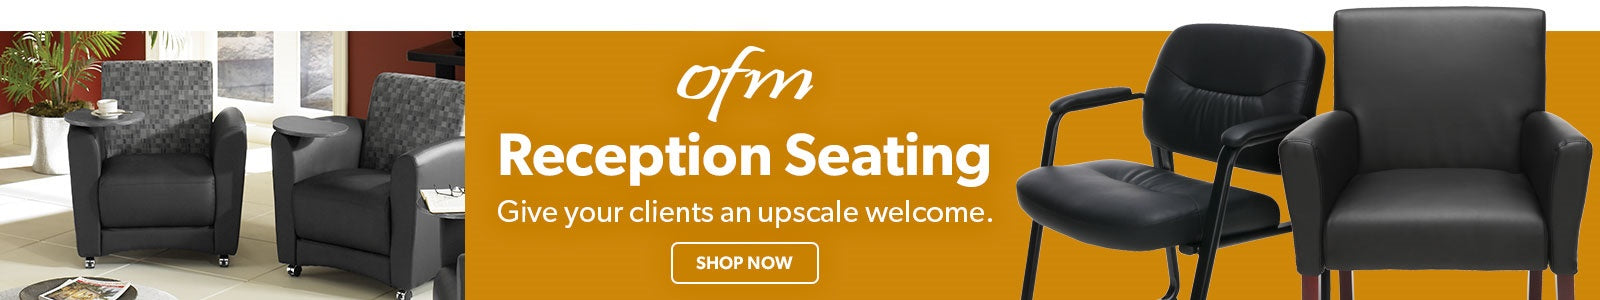 OFM Reception Seating Banner Image